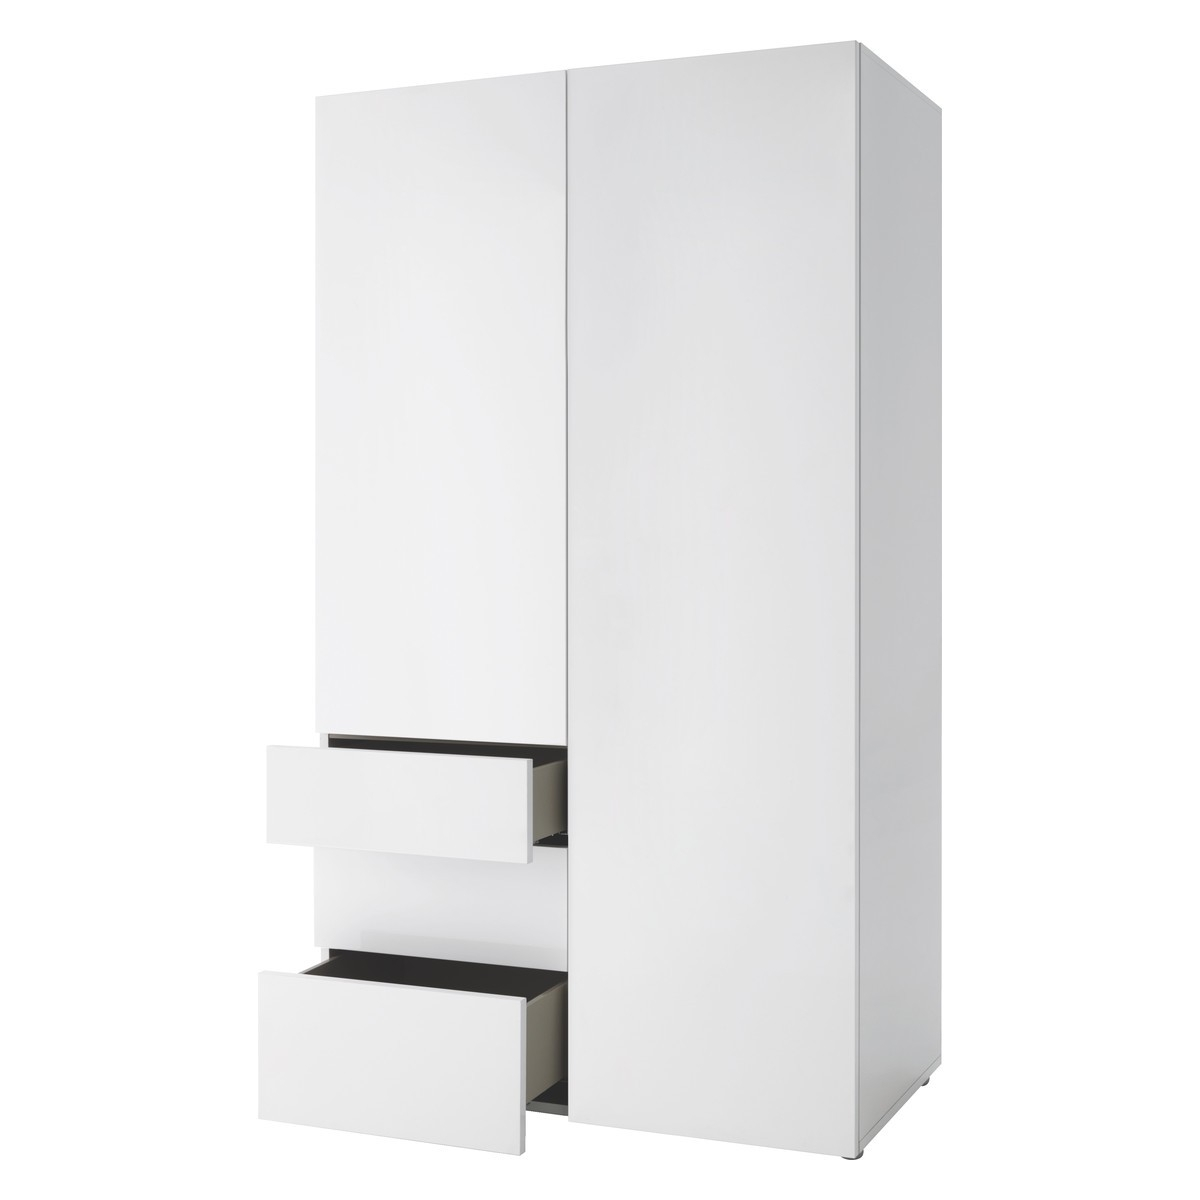 Buy Now At Habitat Uk With 2018 White 2 Door Wardrobes With Drawers (View 3 of 15)